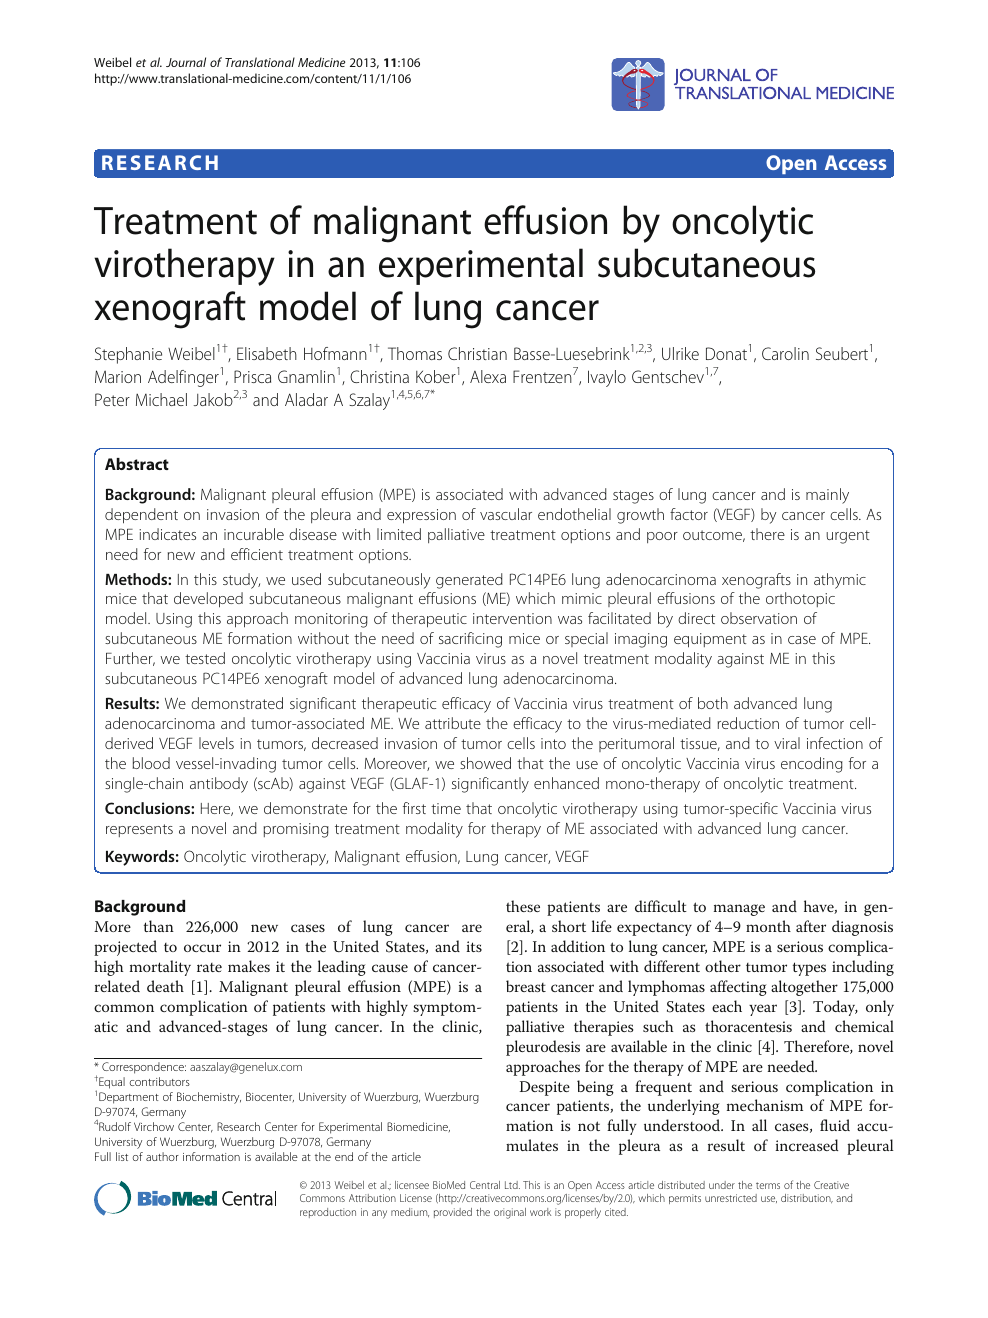 Treatment of malignant effusion by oncolytic virotherapy in